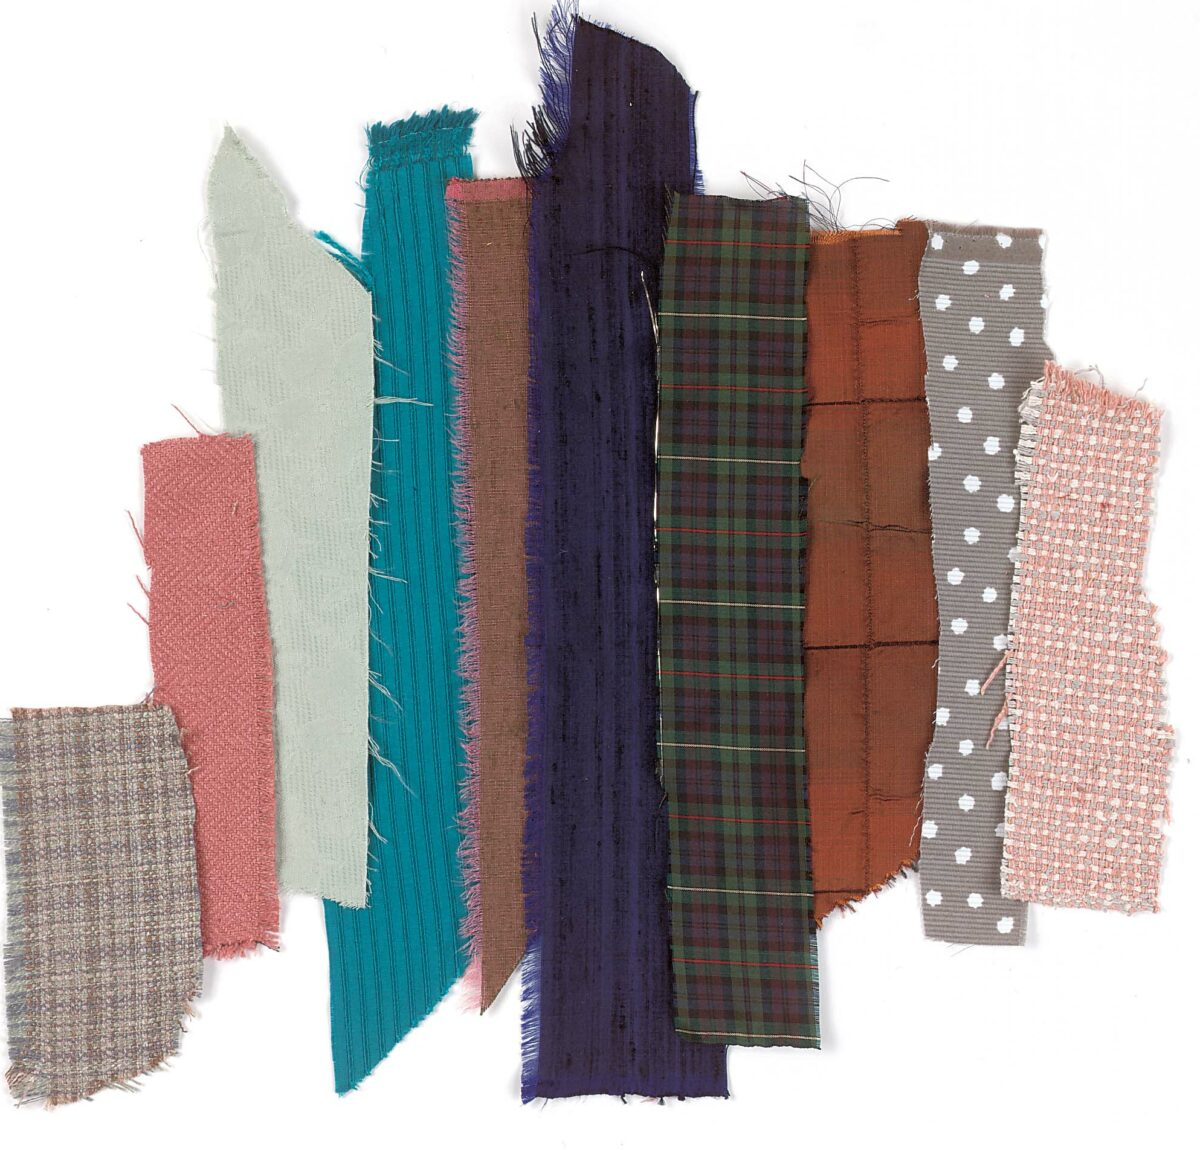 fabric shopping swatches